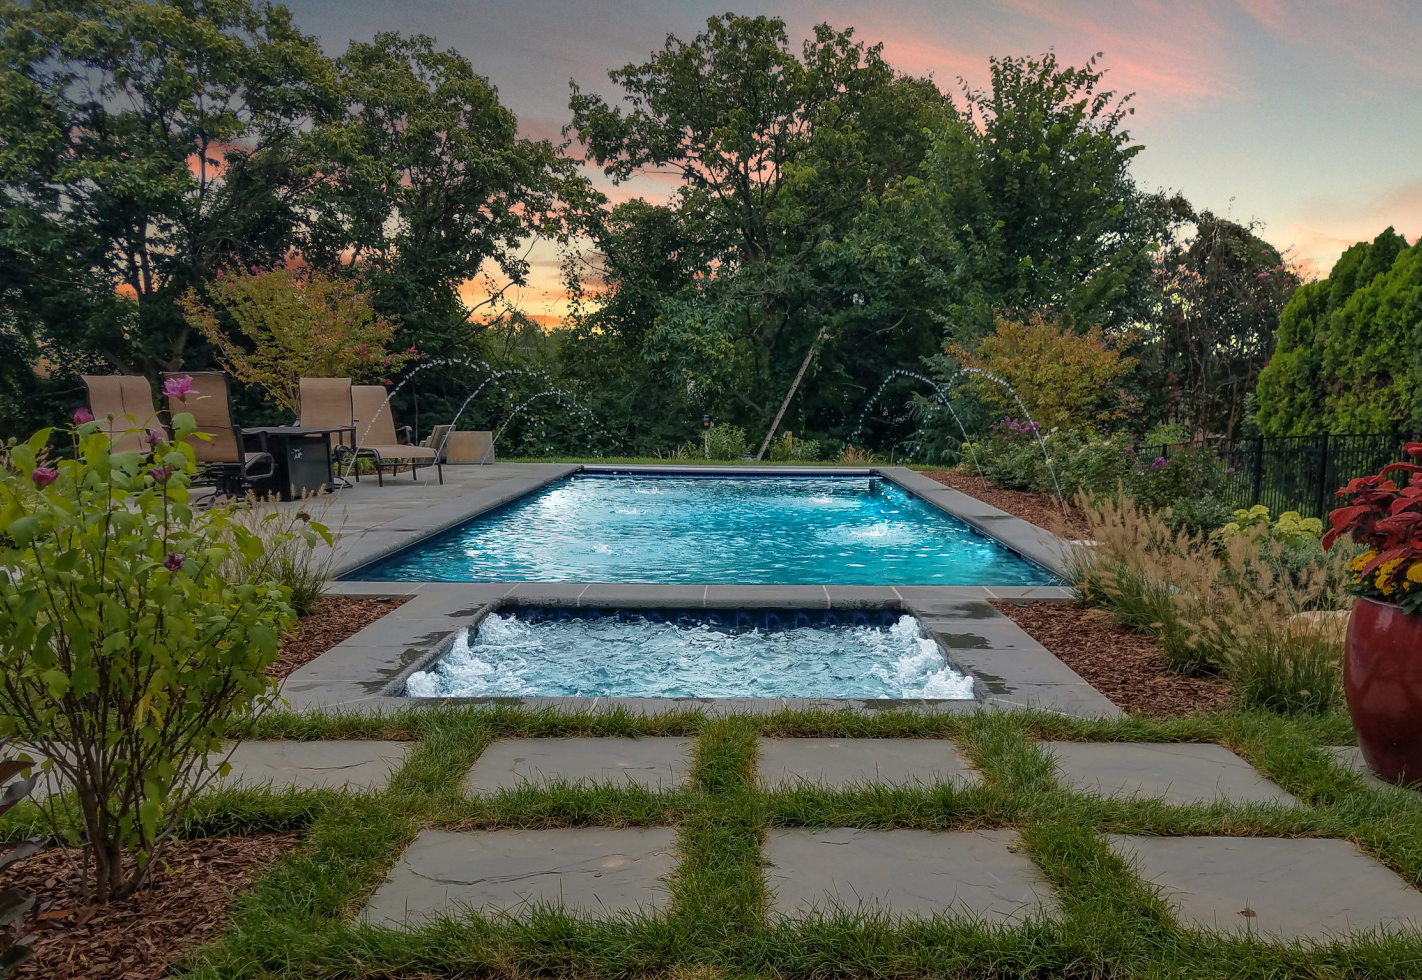 Modern Pool Designs That Create A Chic And Urban Look Perfect Pools